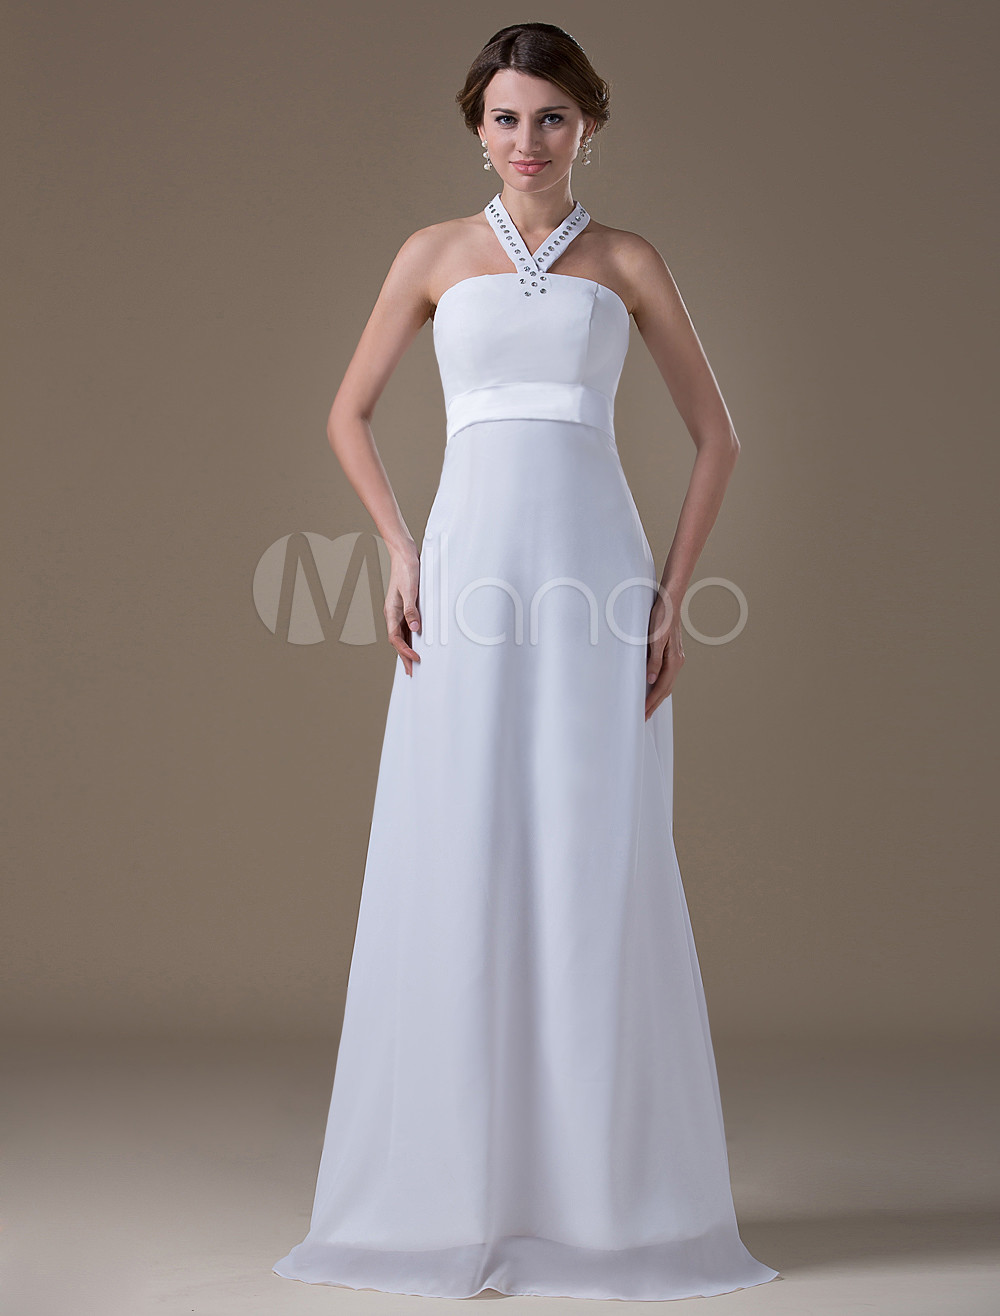 White Halter Chiffon Maternity Wedding Dress